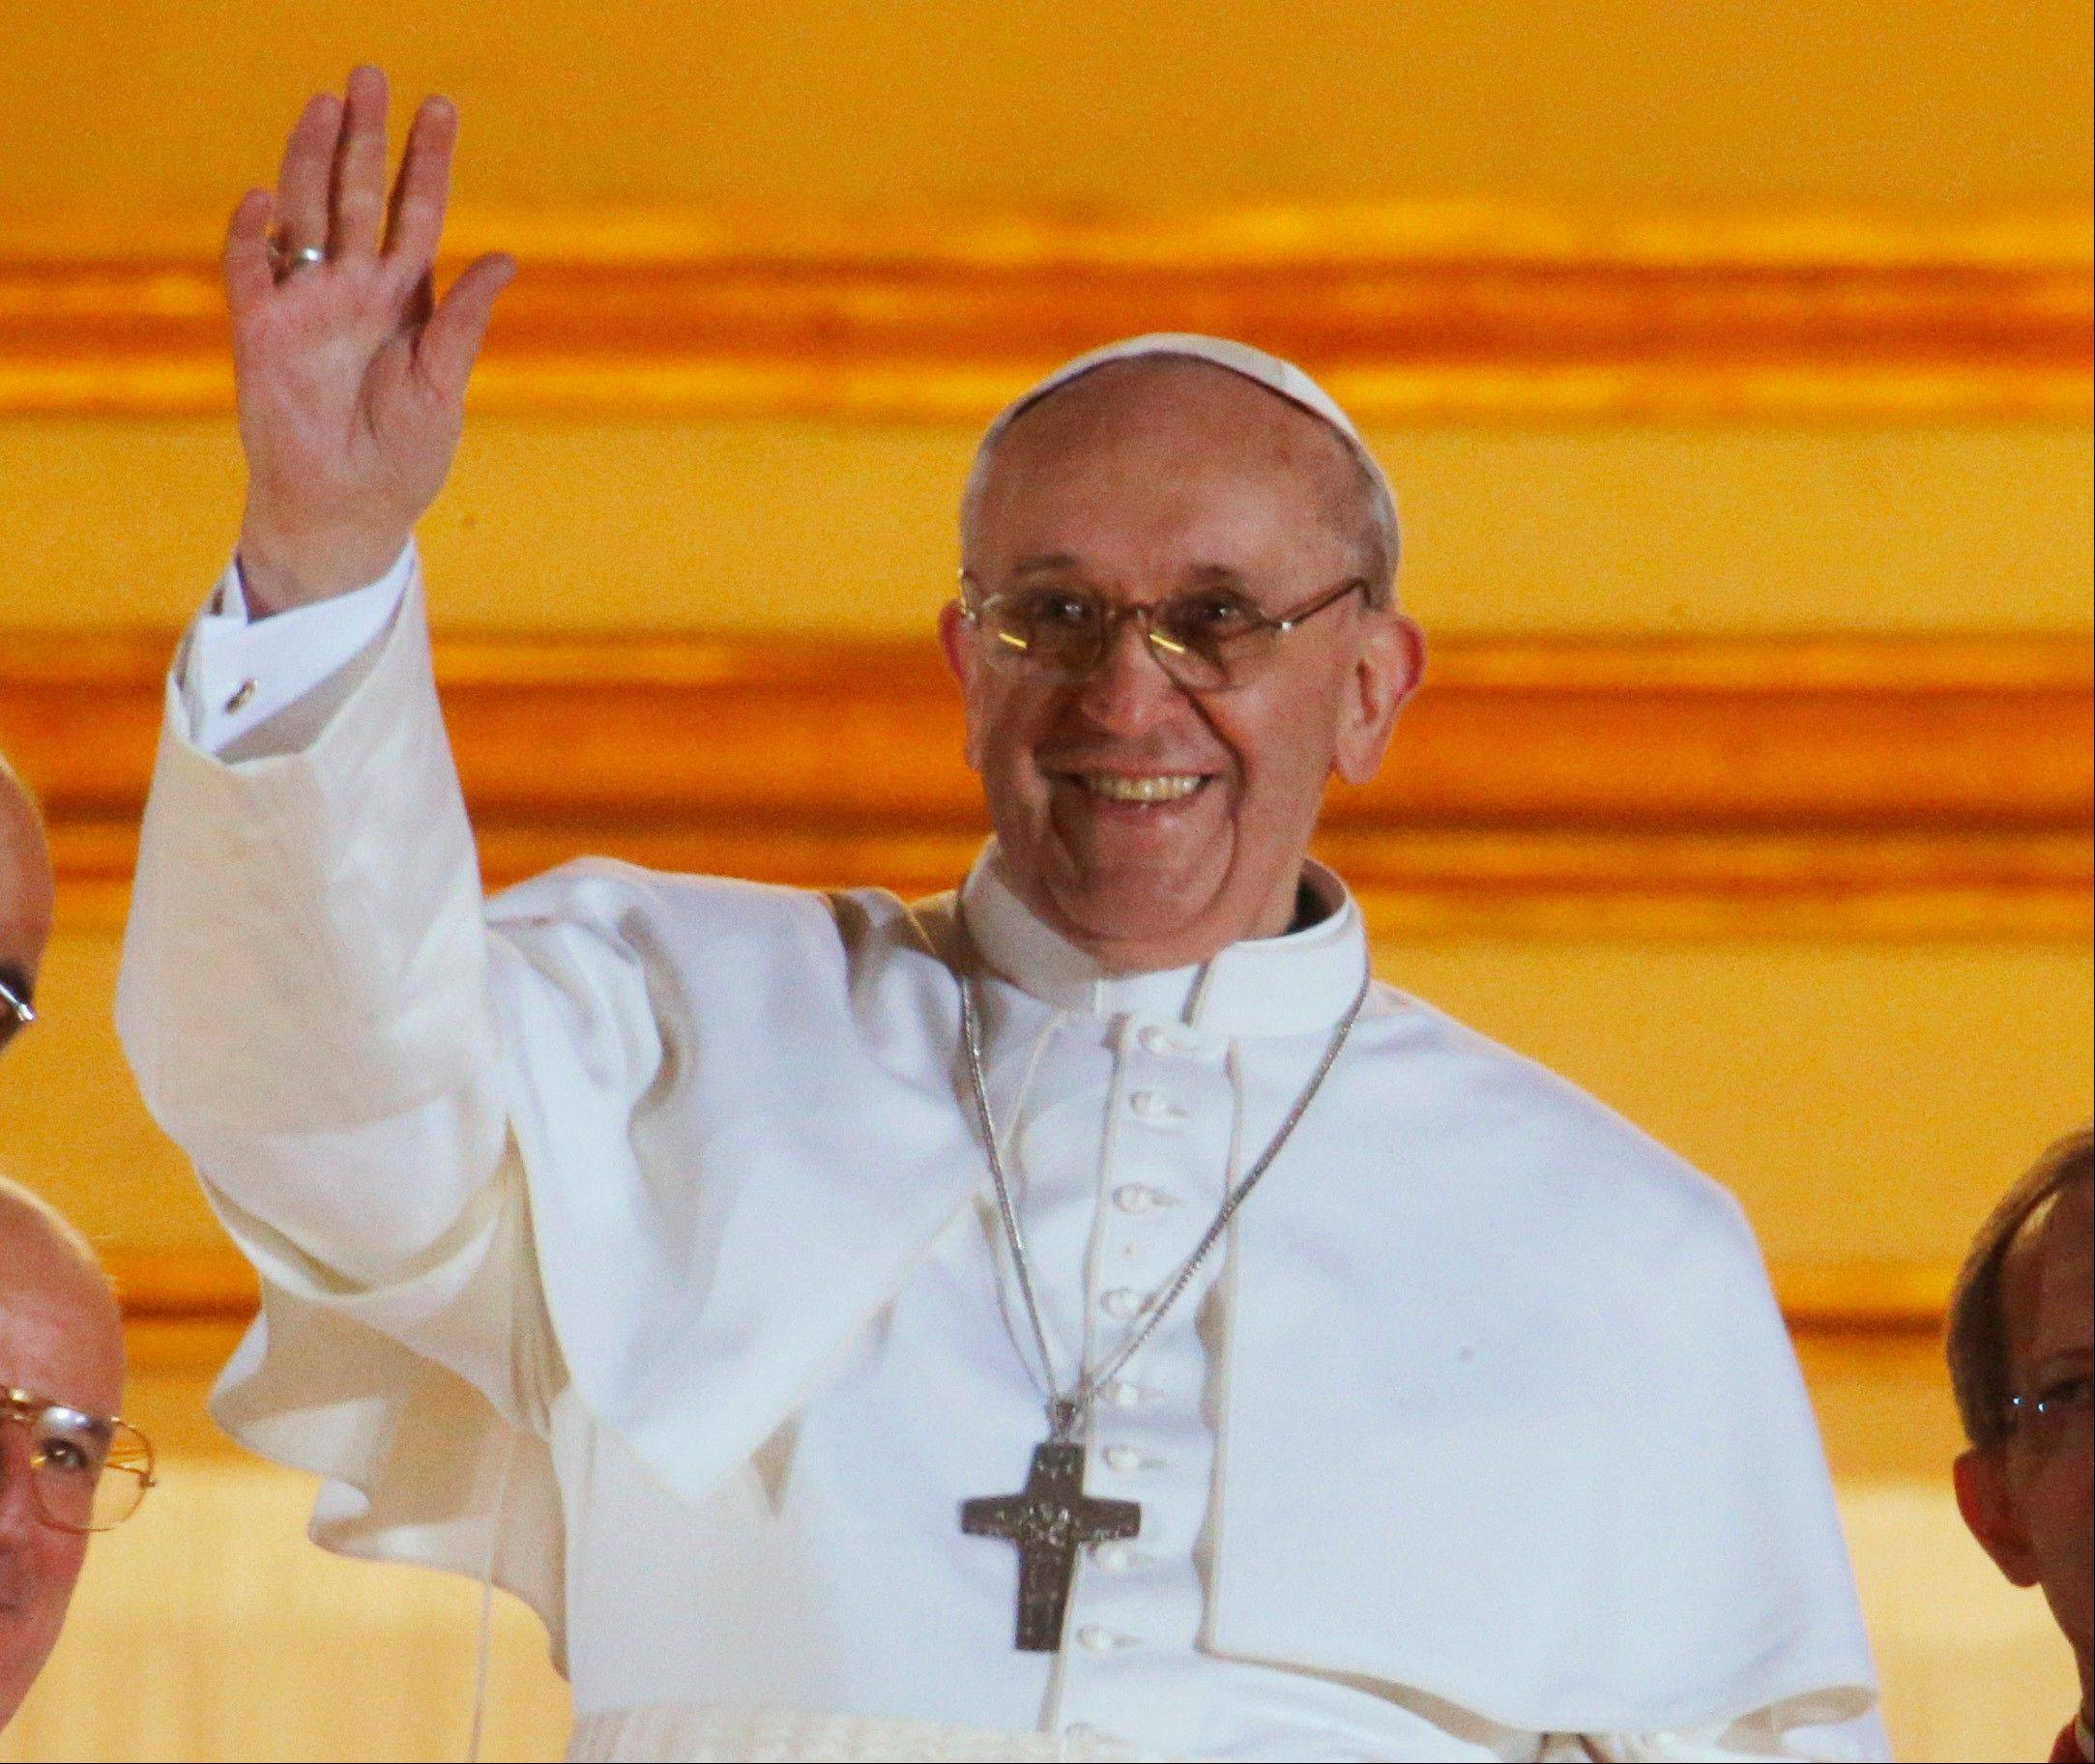 Pope Francis waves to the crowd from the central balcony of St. Peter's Basilica at the Vatican